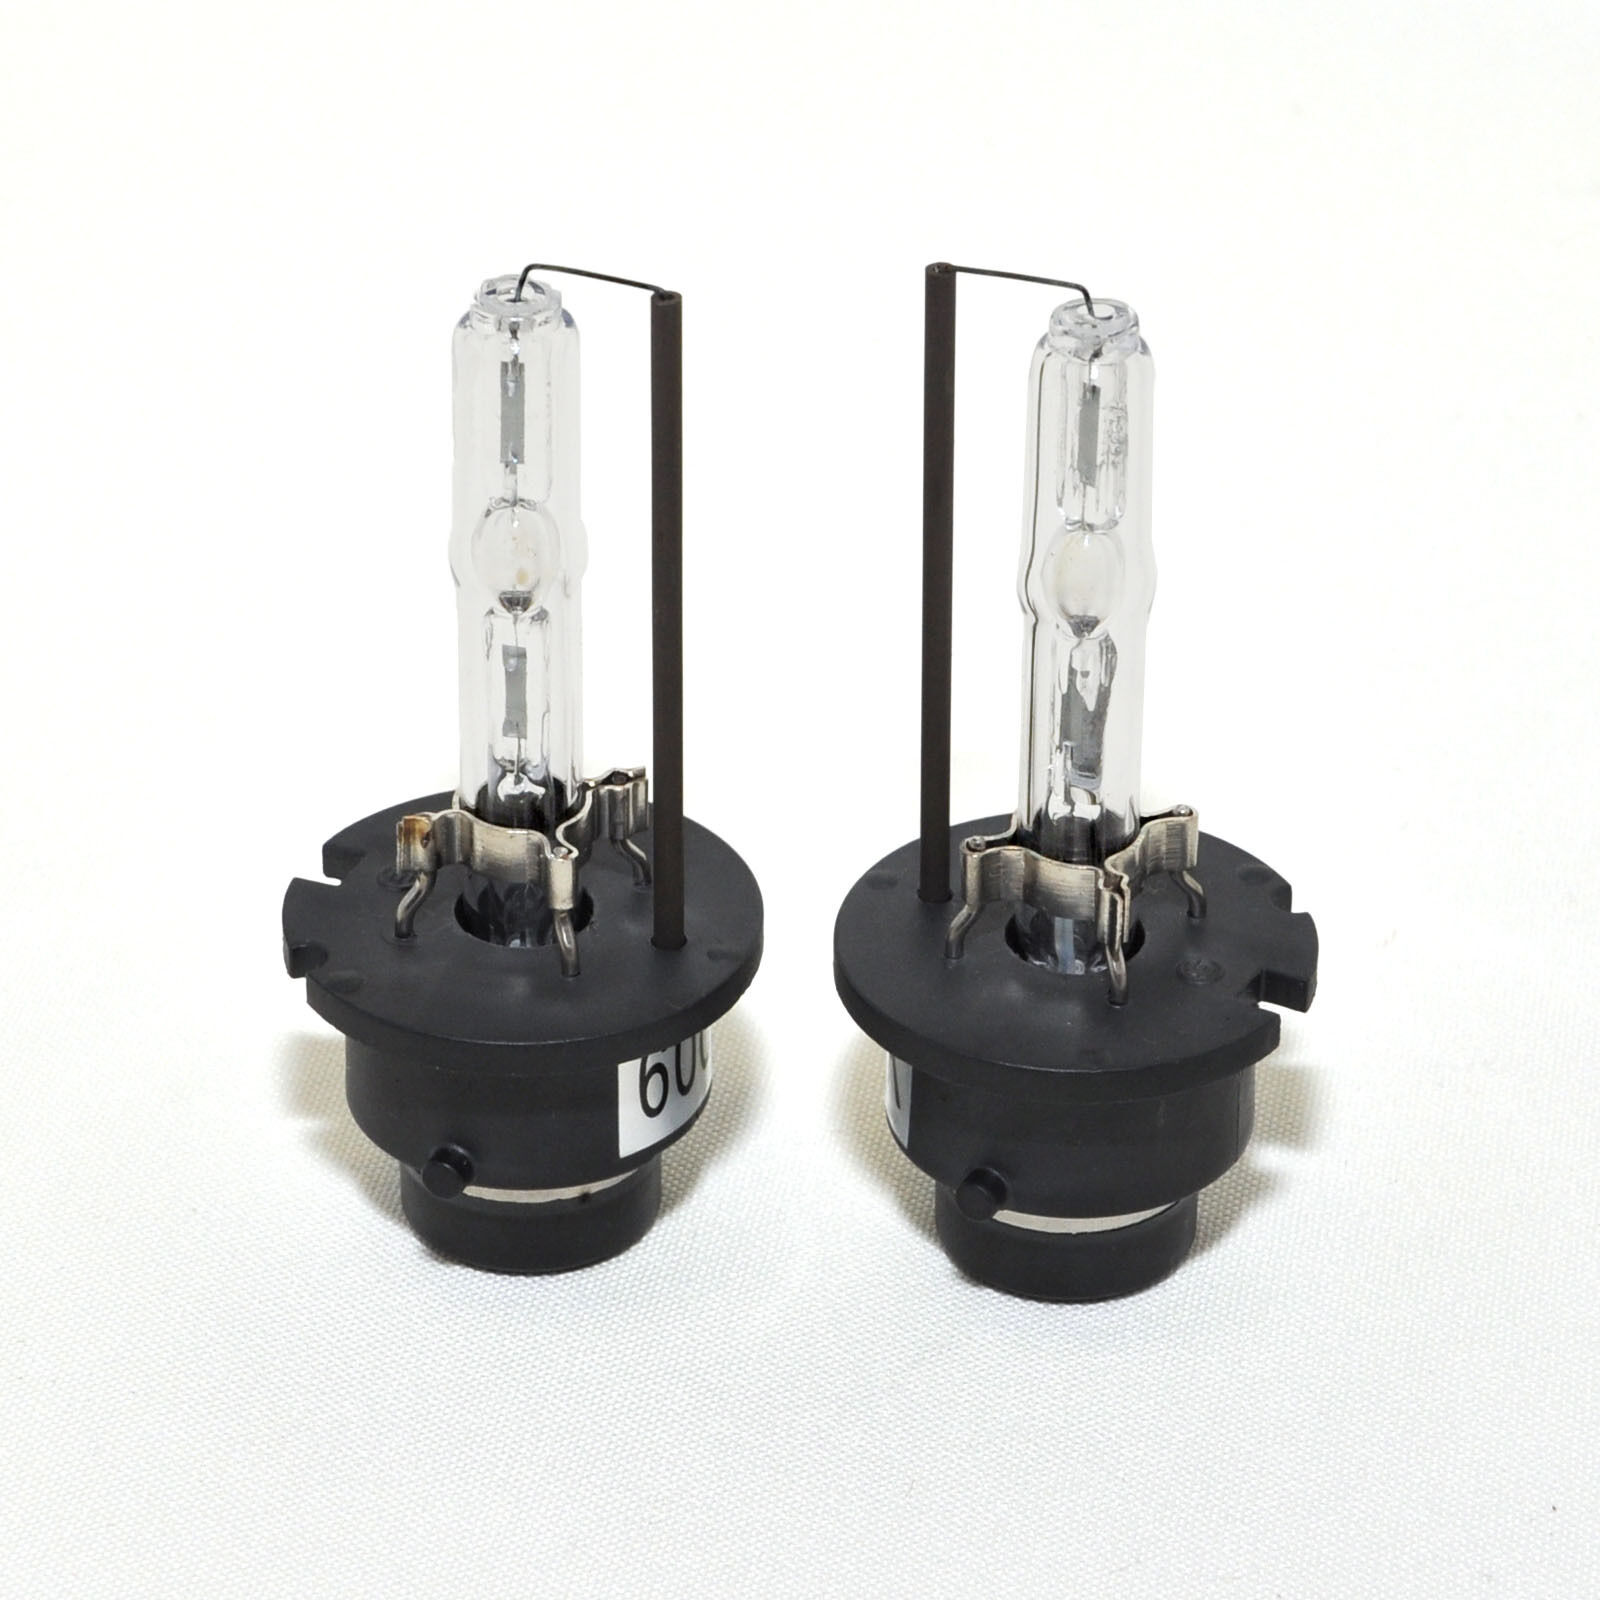 D2S HID Xenon Bulbs 2 OEM Replacement for BMW 1 Series 04-06 E87 E81 Headlamps